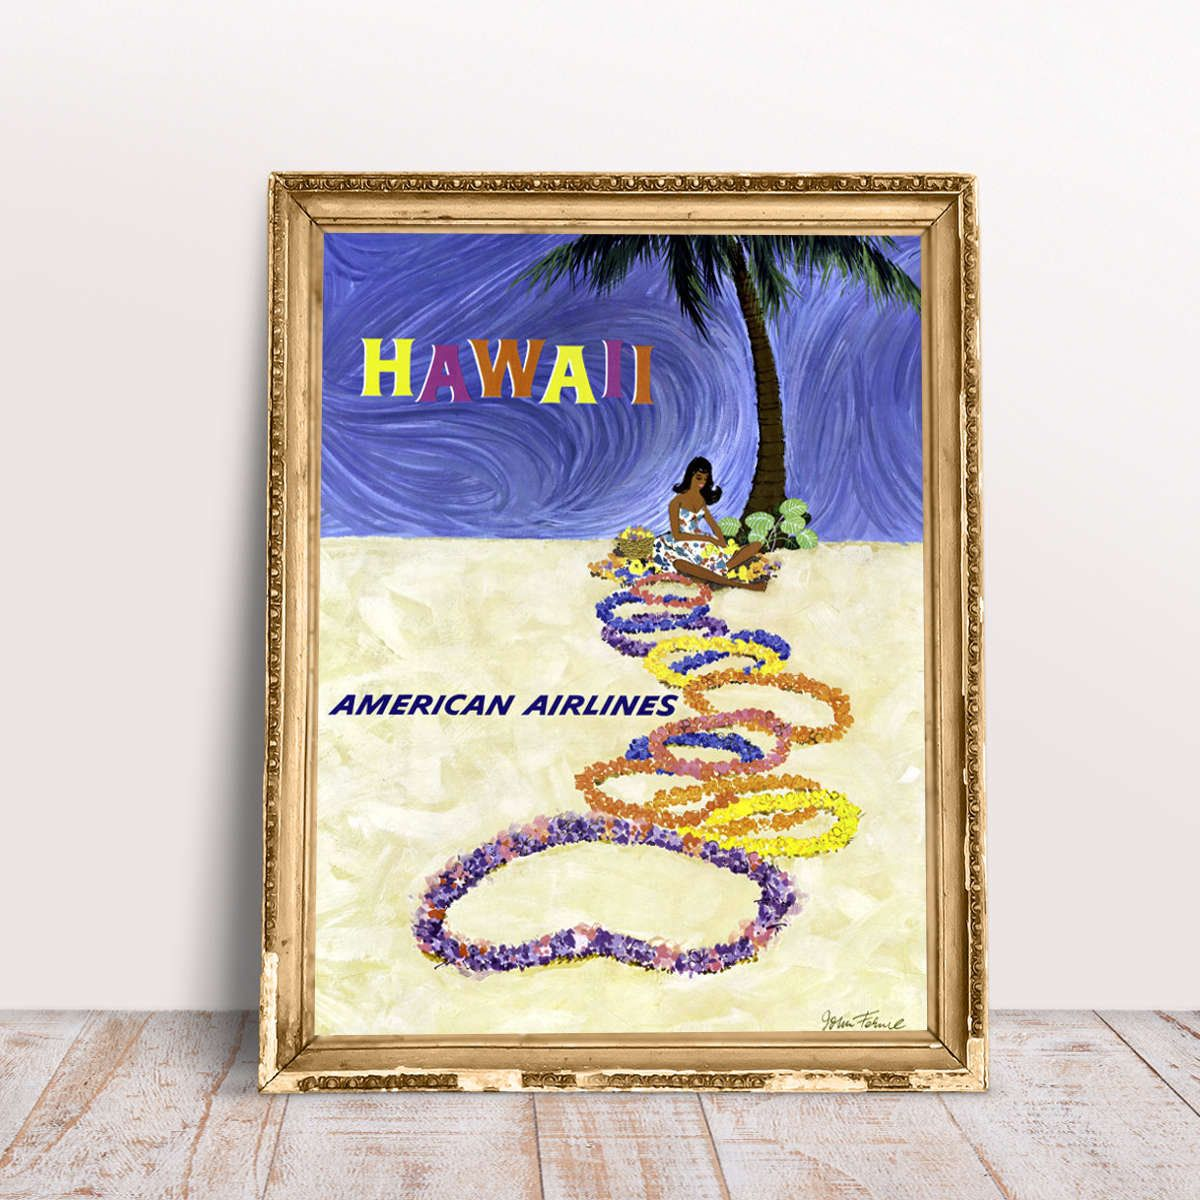 Hawaii Poster Vintage American Airlines Print by John